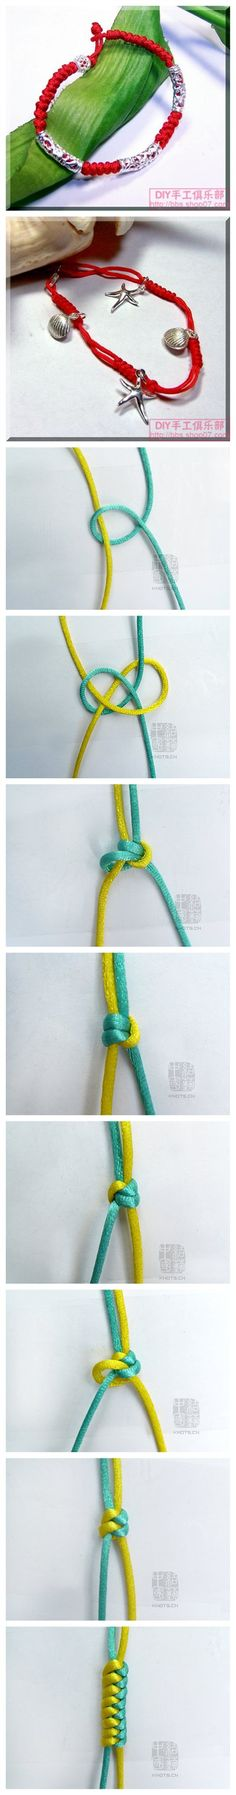 DIY Weave Bracelet - a new knot to me; I'd like to try this.